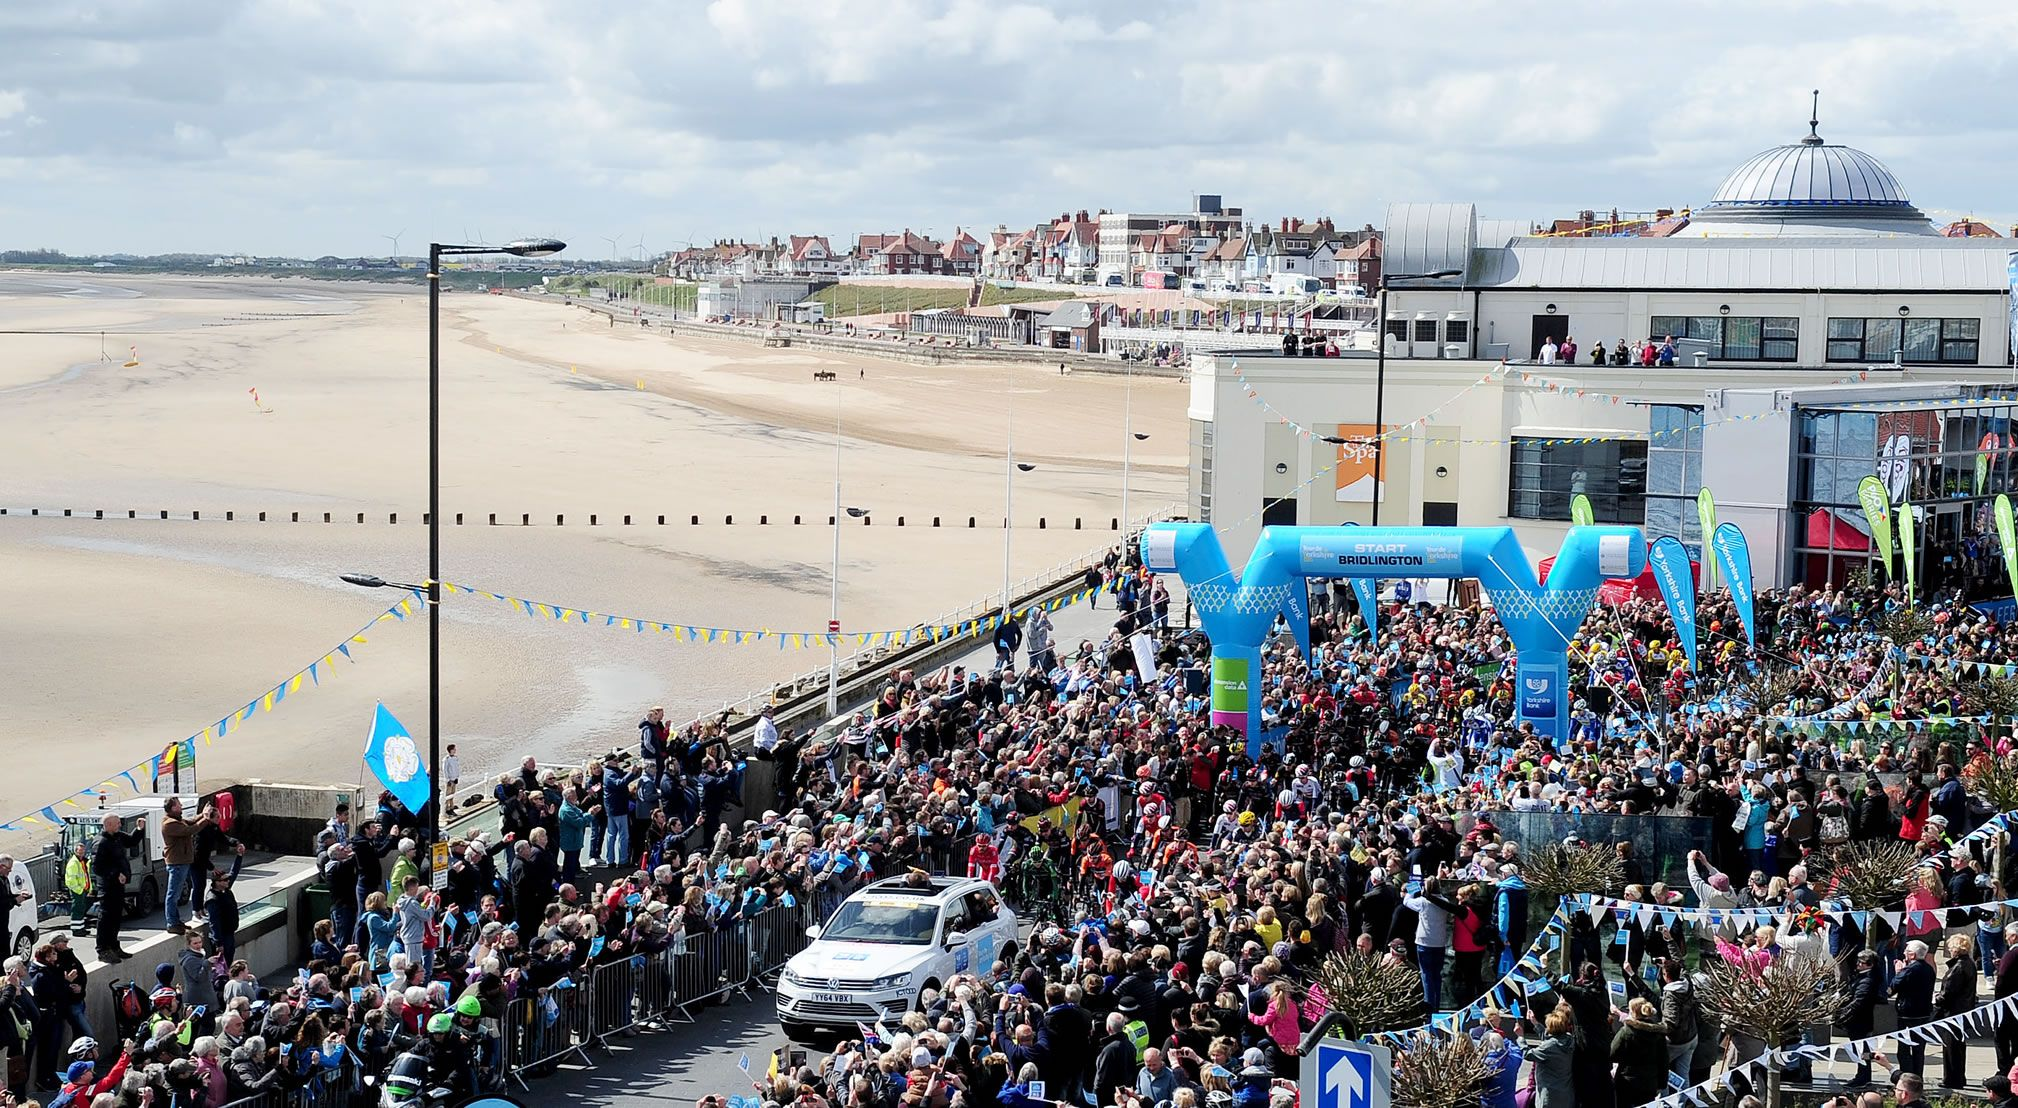 The awesome start to the Tour de Yorkshire in Bridlington, fantastic crowds!